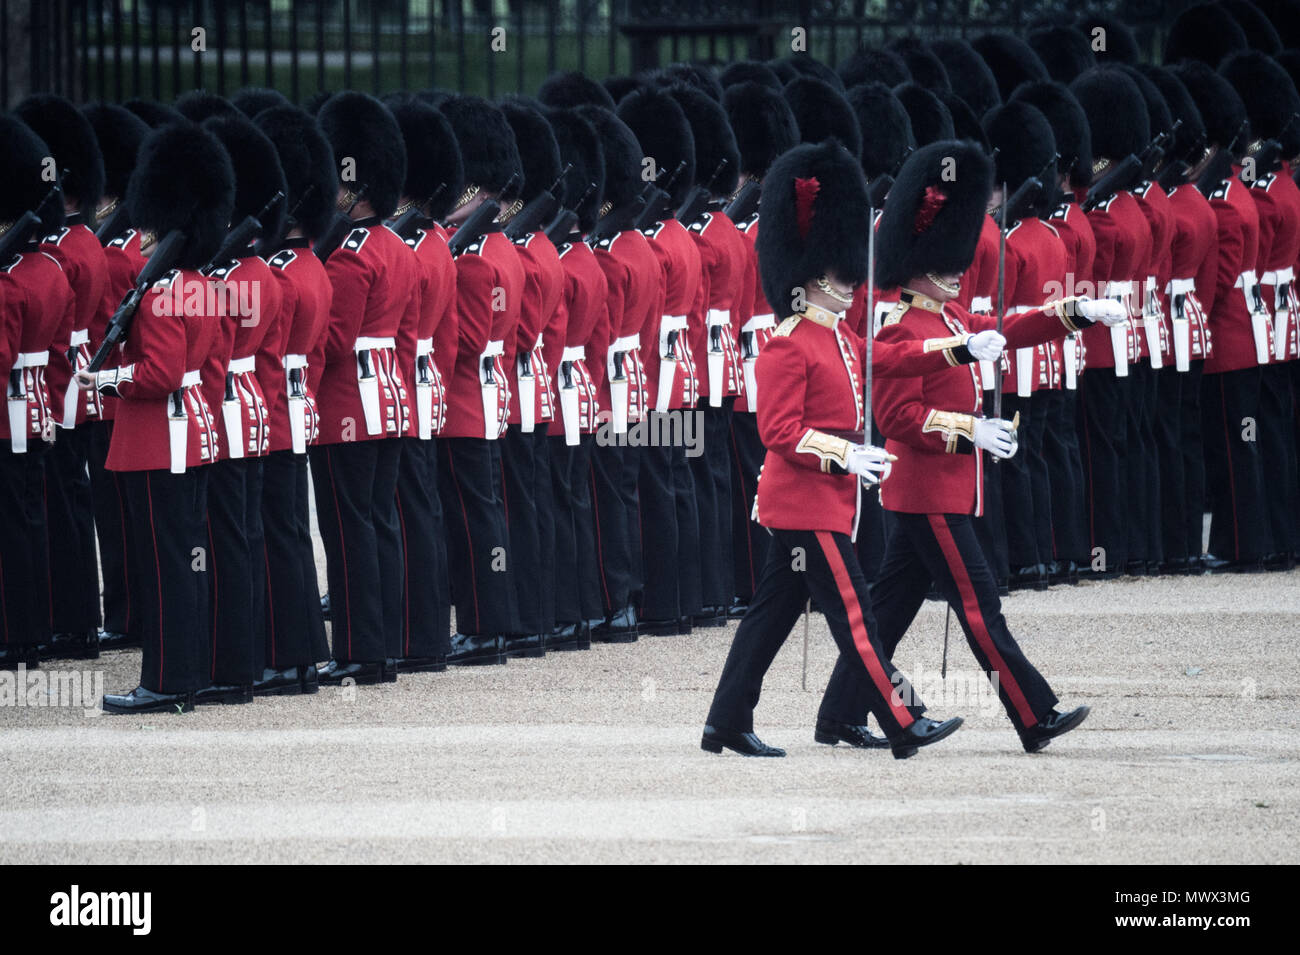 London, UK. 2nd June, 2018. Members of the Royal Guard are seen marching during the Colonel's Review.Soldiers rehearse their steps as they prepare for Trooping the Color to mark the Queen's official birthday next week. More than 1,400 officers and men are on parade along with 200 horses, 400 musicians from ten bands and corps of drums march. Lieutenant General Sir James Jeffrey Cofield Becknell, will take the salute. Credit: Brais G. Rouco/SOPA Images/ZUMA Wire/Alamy Live News Stock Photo